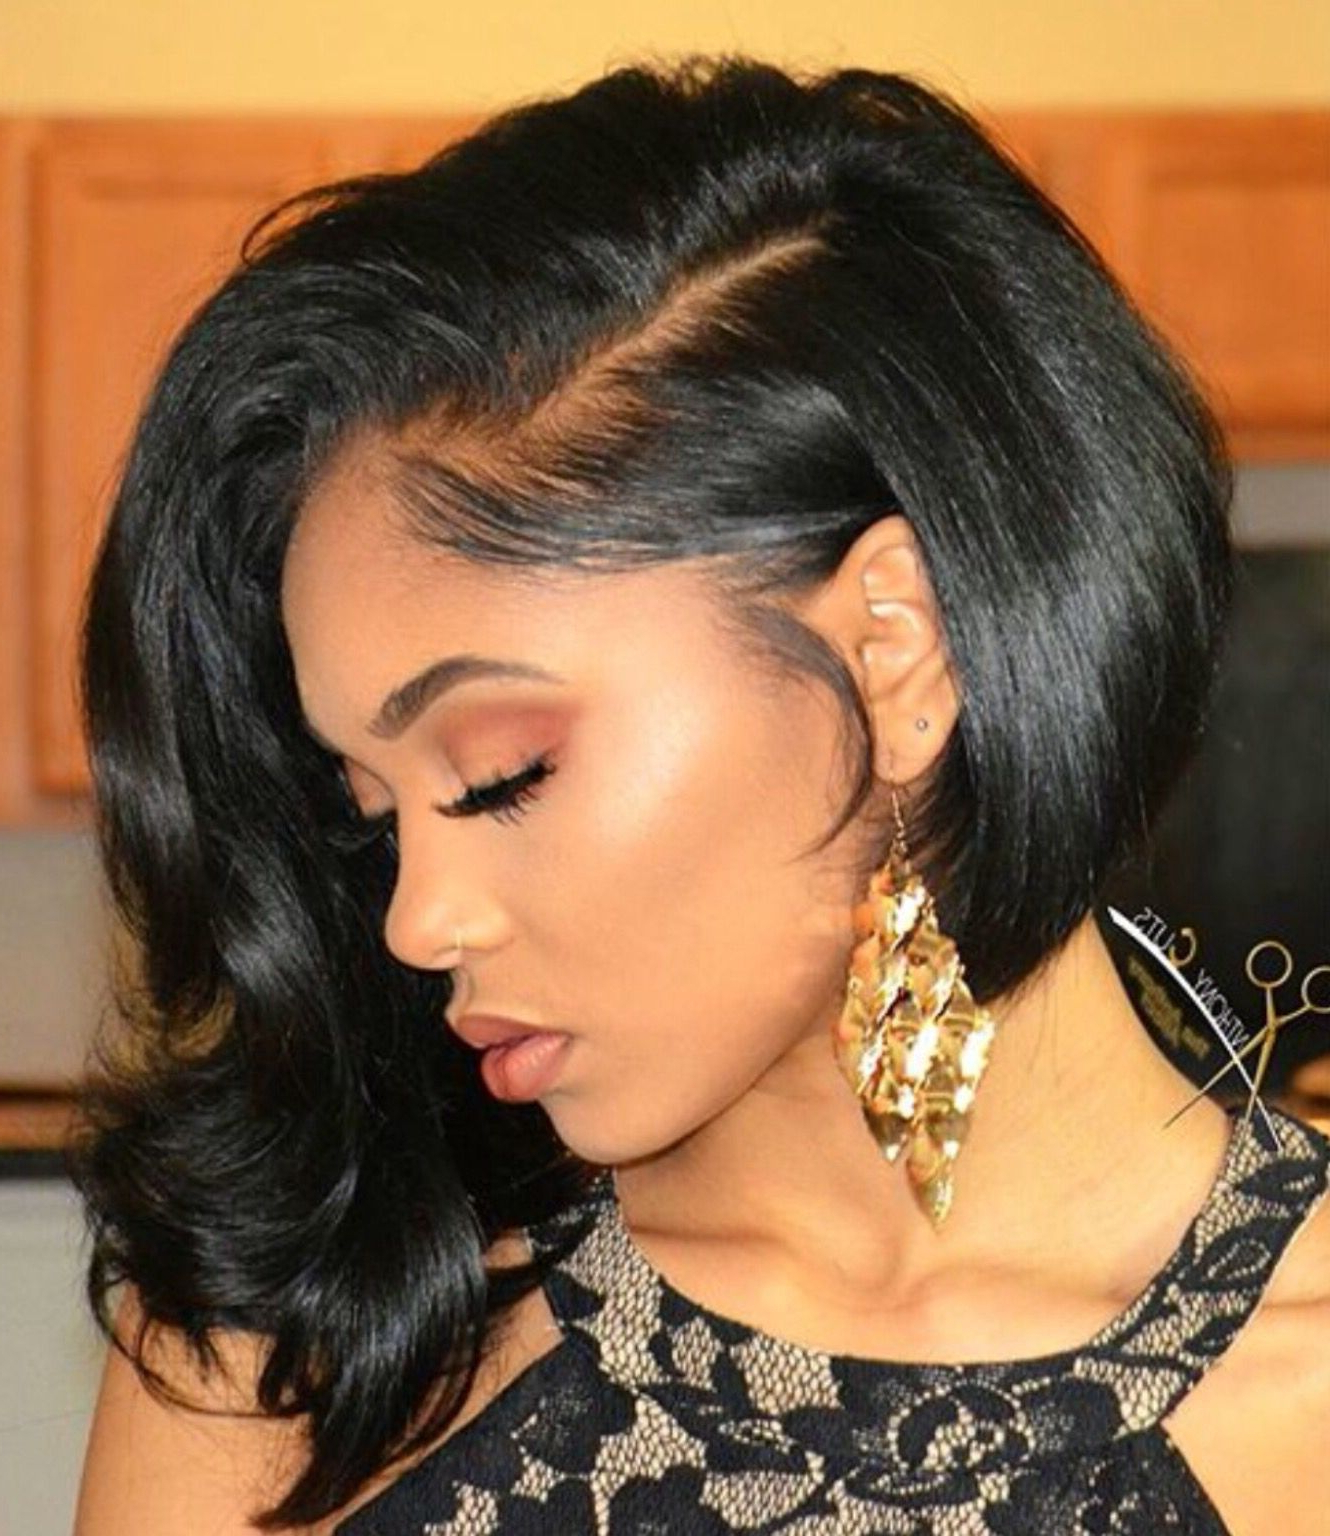 15 Curly Weave Hairstyles For Long And Short Hair Types | Hairstyles Regarding Bouncy Curly Black Bob Hairstyles (View 1 of 20)